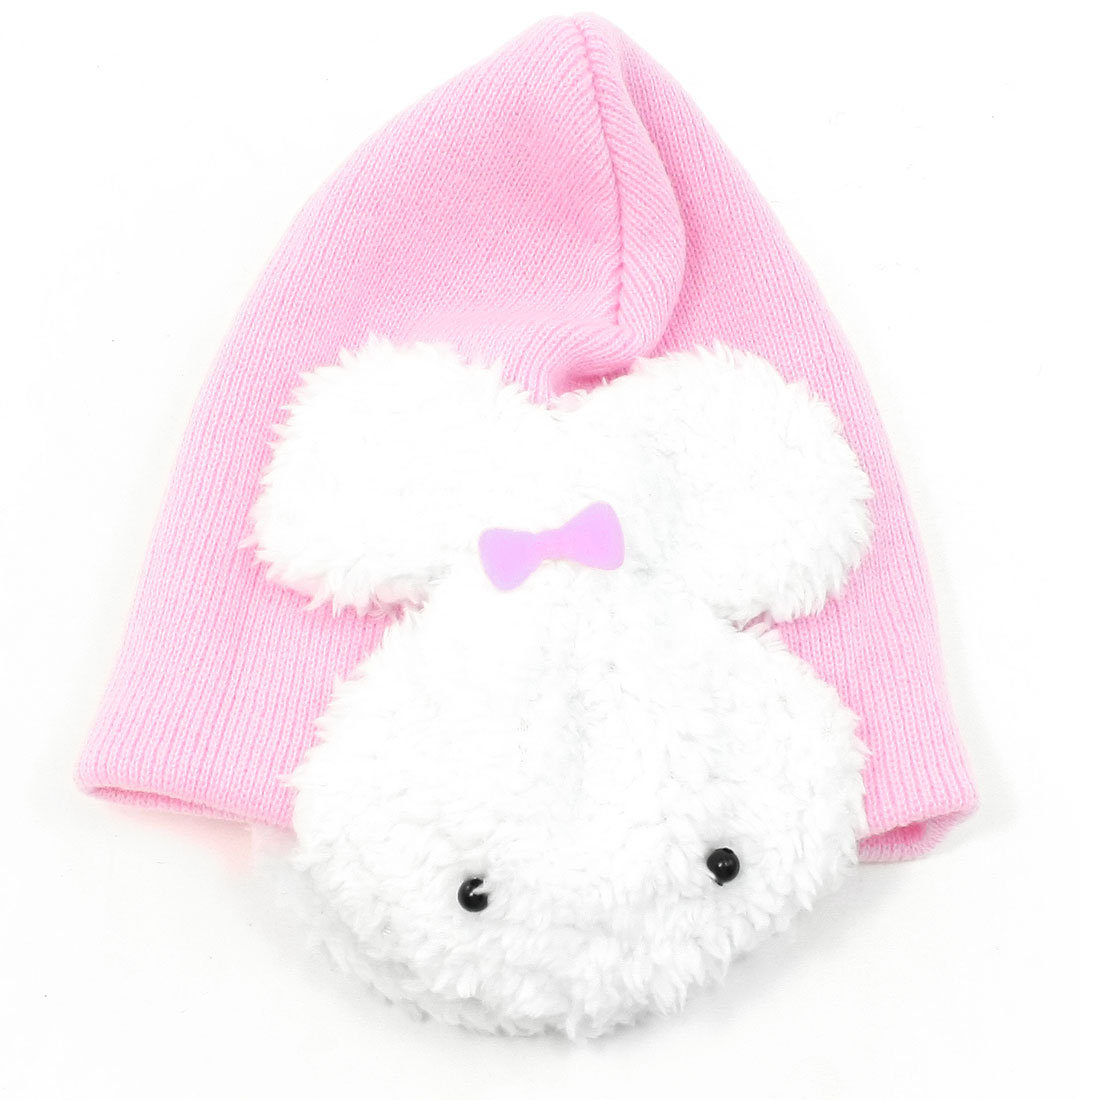 Rabbit Decor Pink Ears Winter Protective Knitting Beanie Hat Cap for Kid